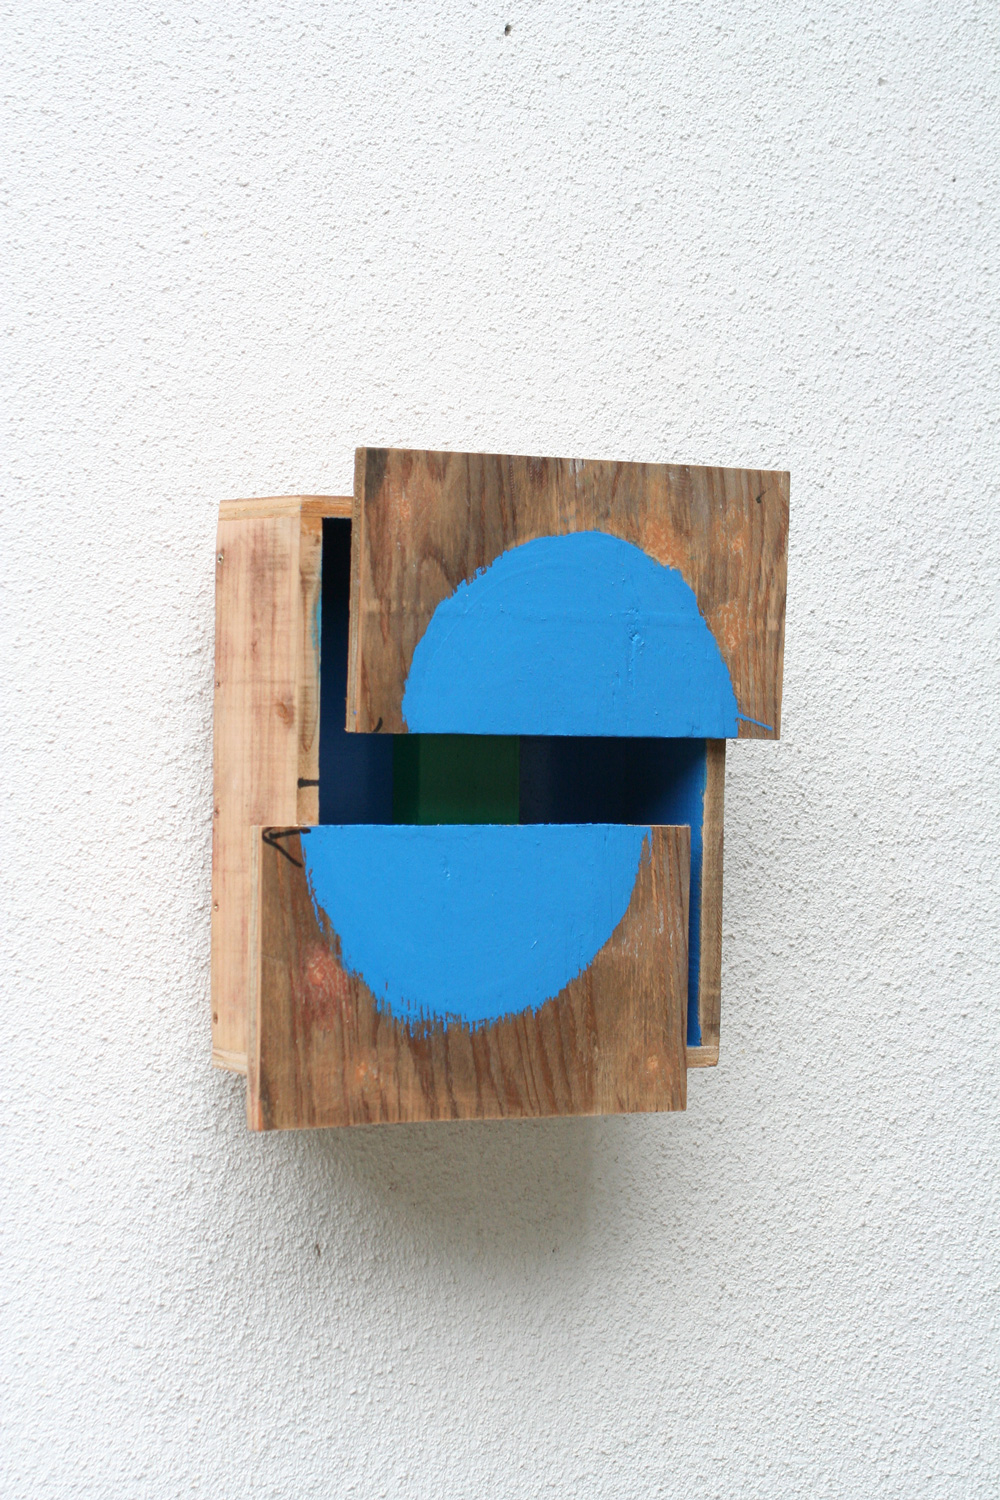 Corresponding Space , 2008 間化静合 ( Kanka Seigō ) Plywood, paint 13 x 14 x 5 1/2 inches 33 x 35.5 x 14 cm